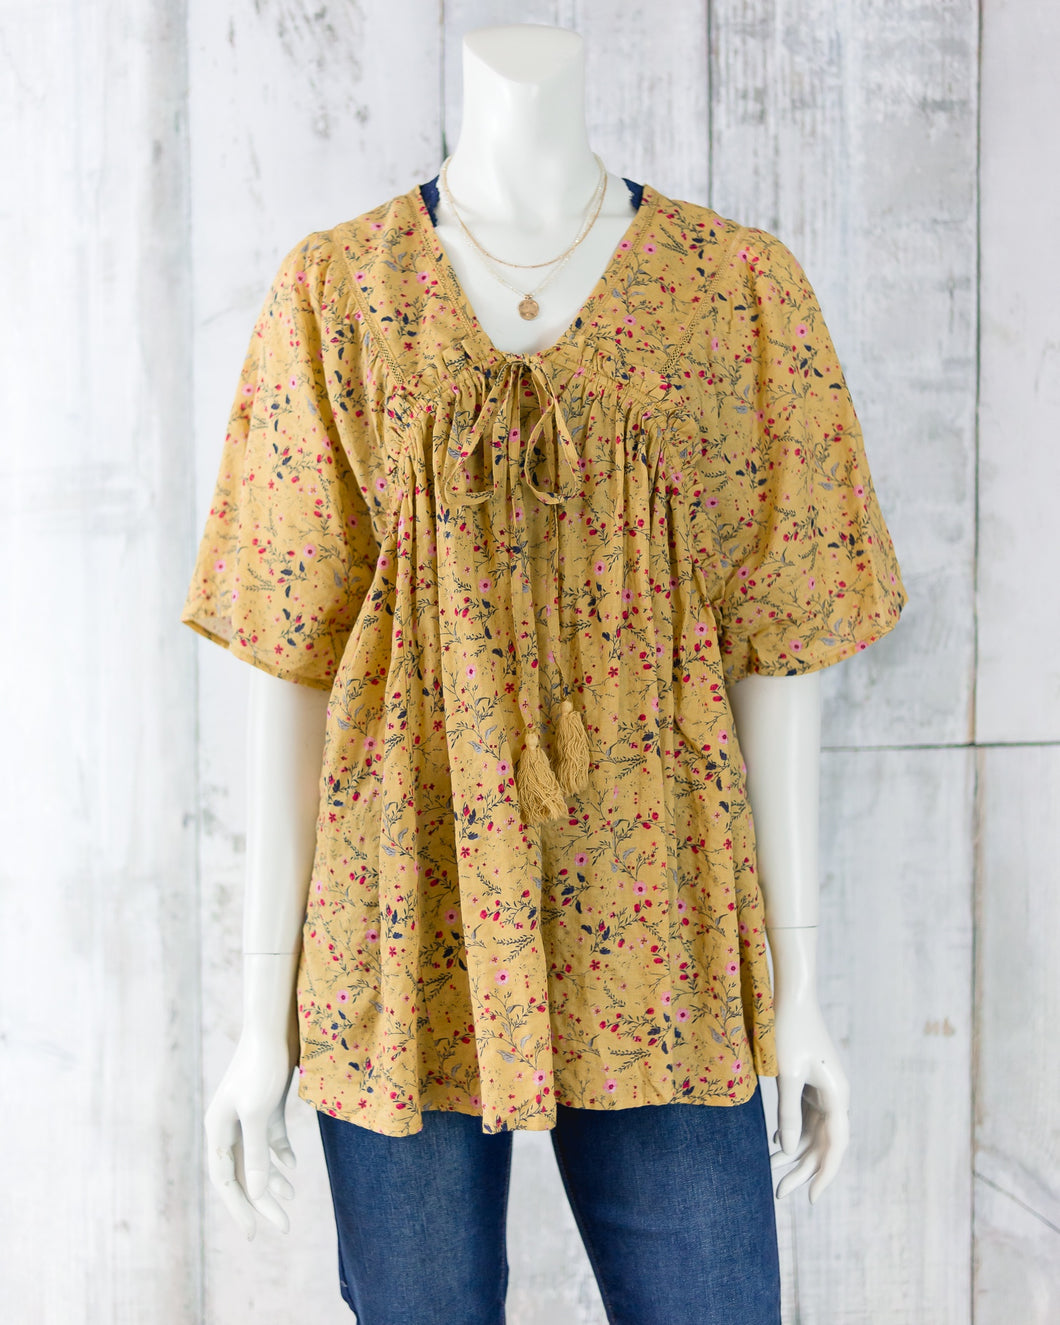 Short Sleeve Peasant Top